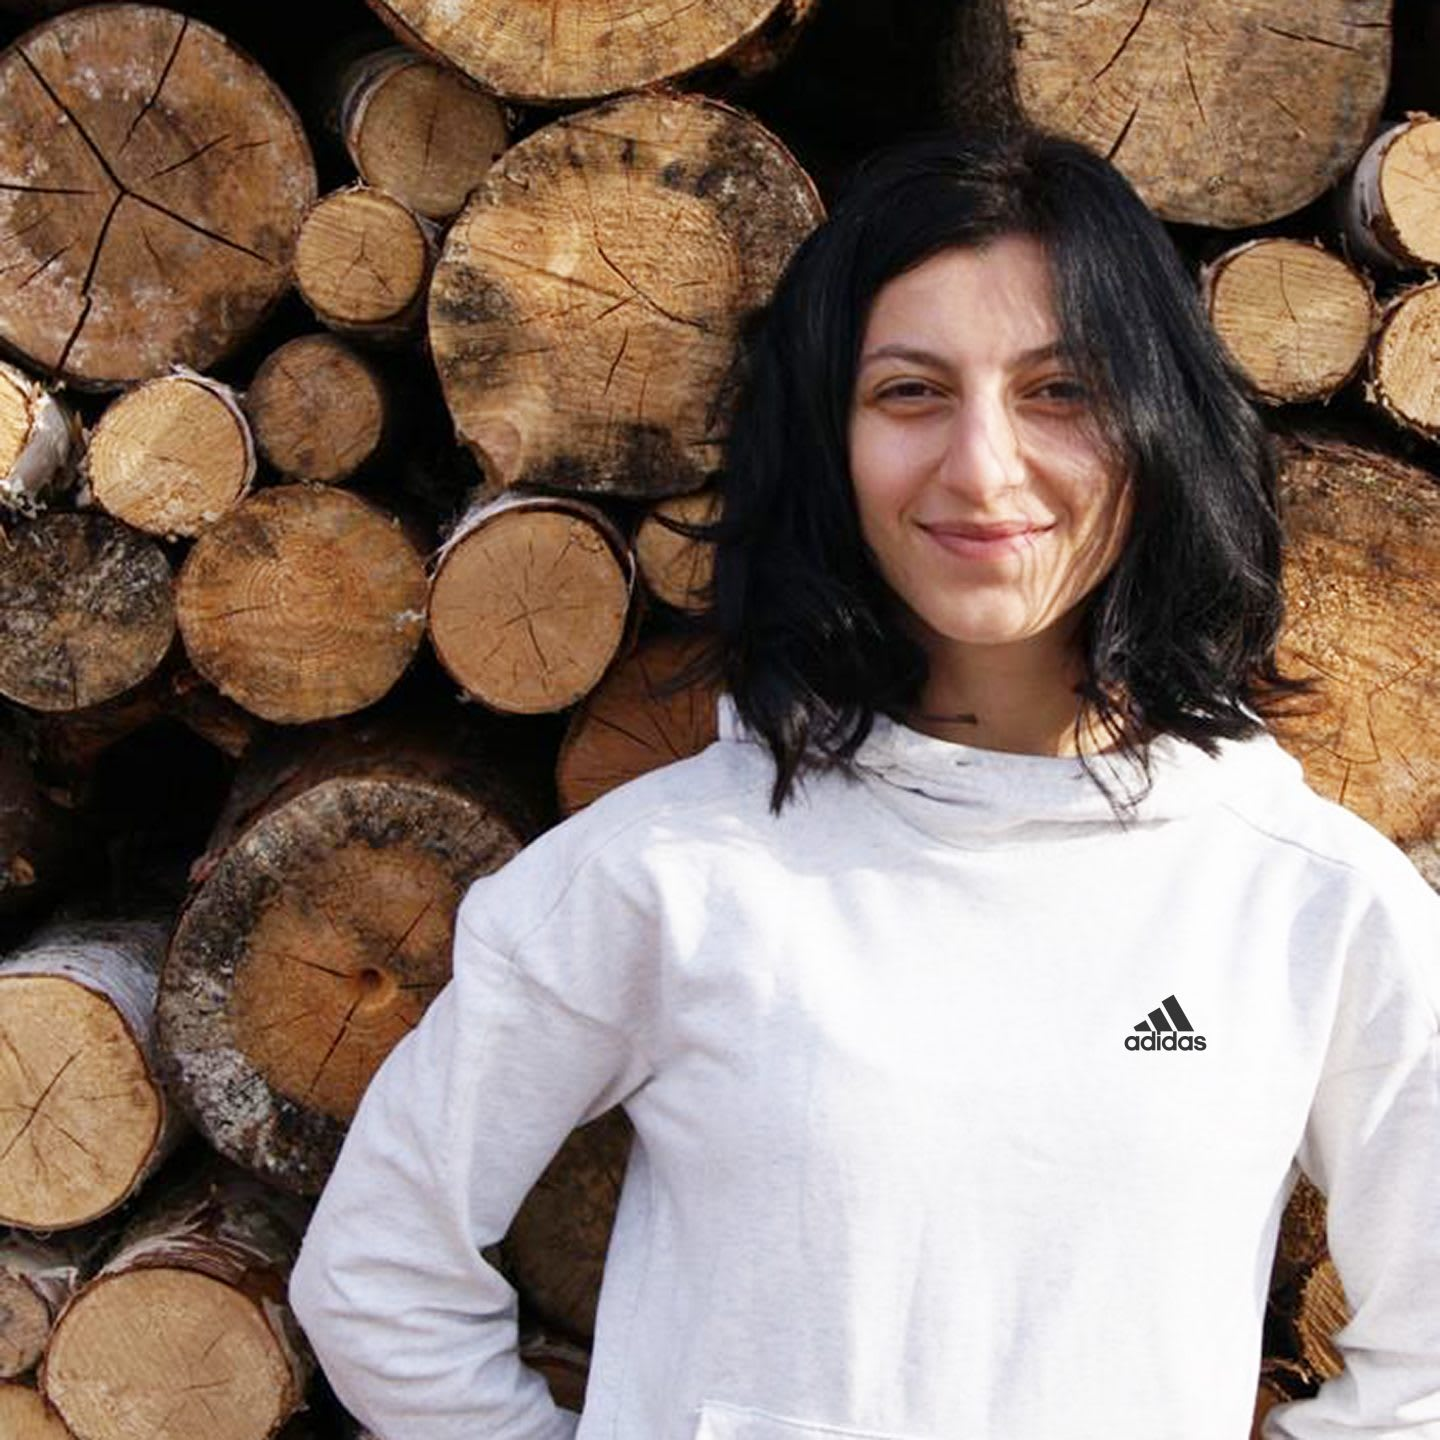 Woman with dark hair wearing adidas sports clothes smiling in front of logs, woman, girl, employee, adidas, sports